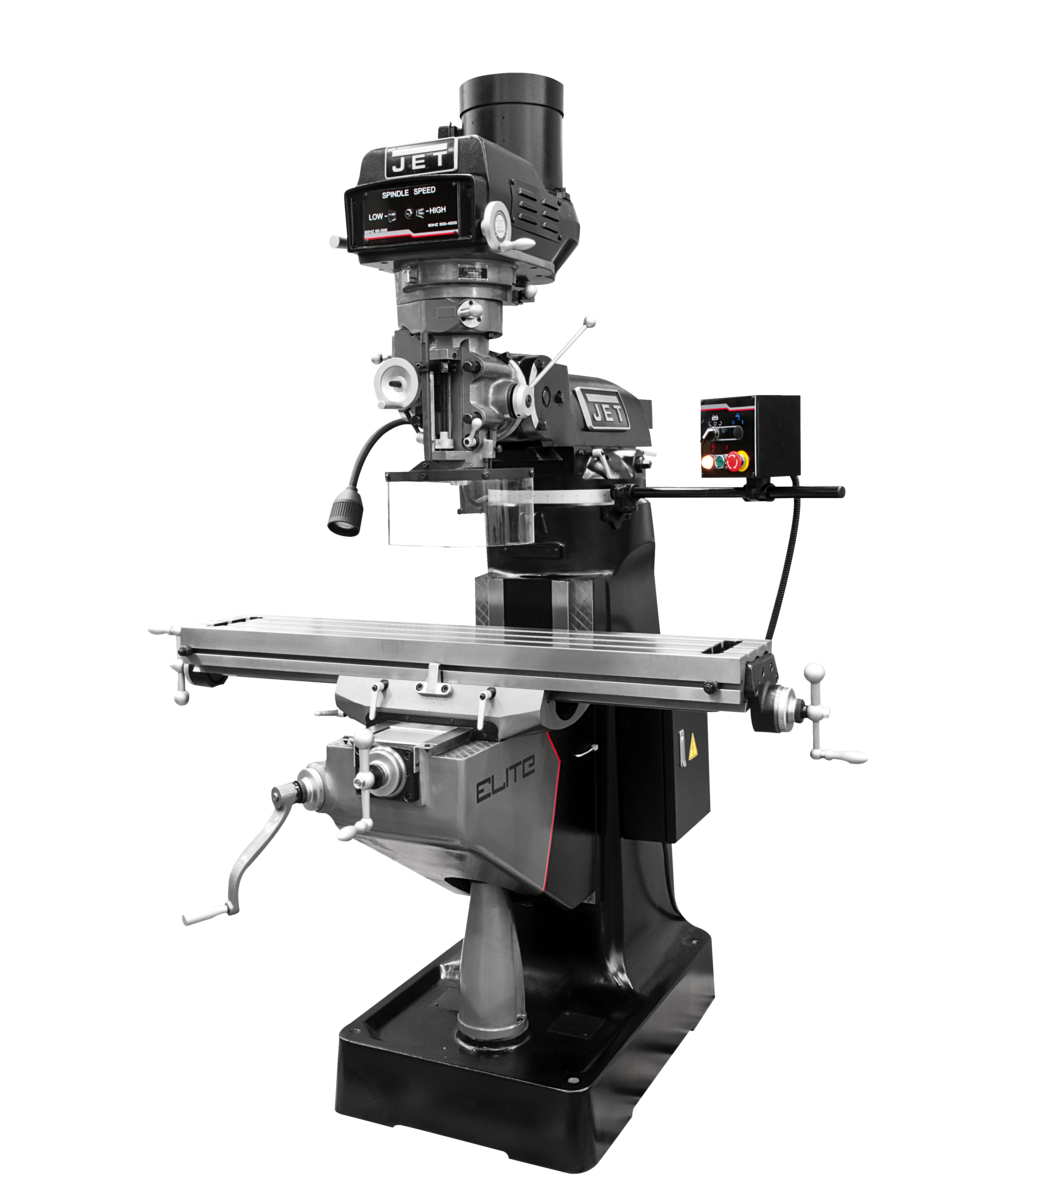 ETM-949 Mill with 2-Axis ACU-RITE 303  DRO and Servo X-Axis Powerfeed